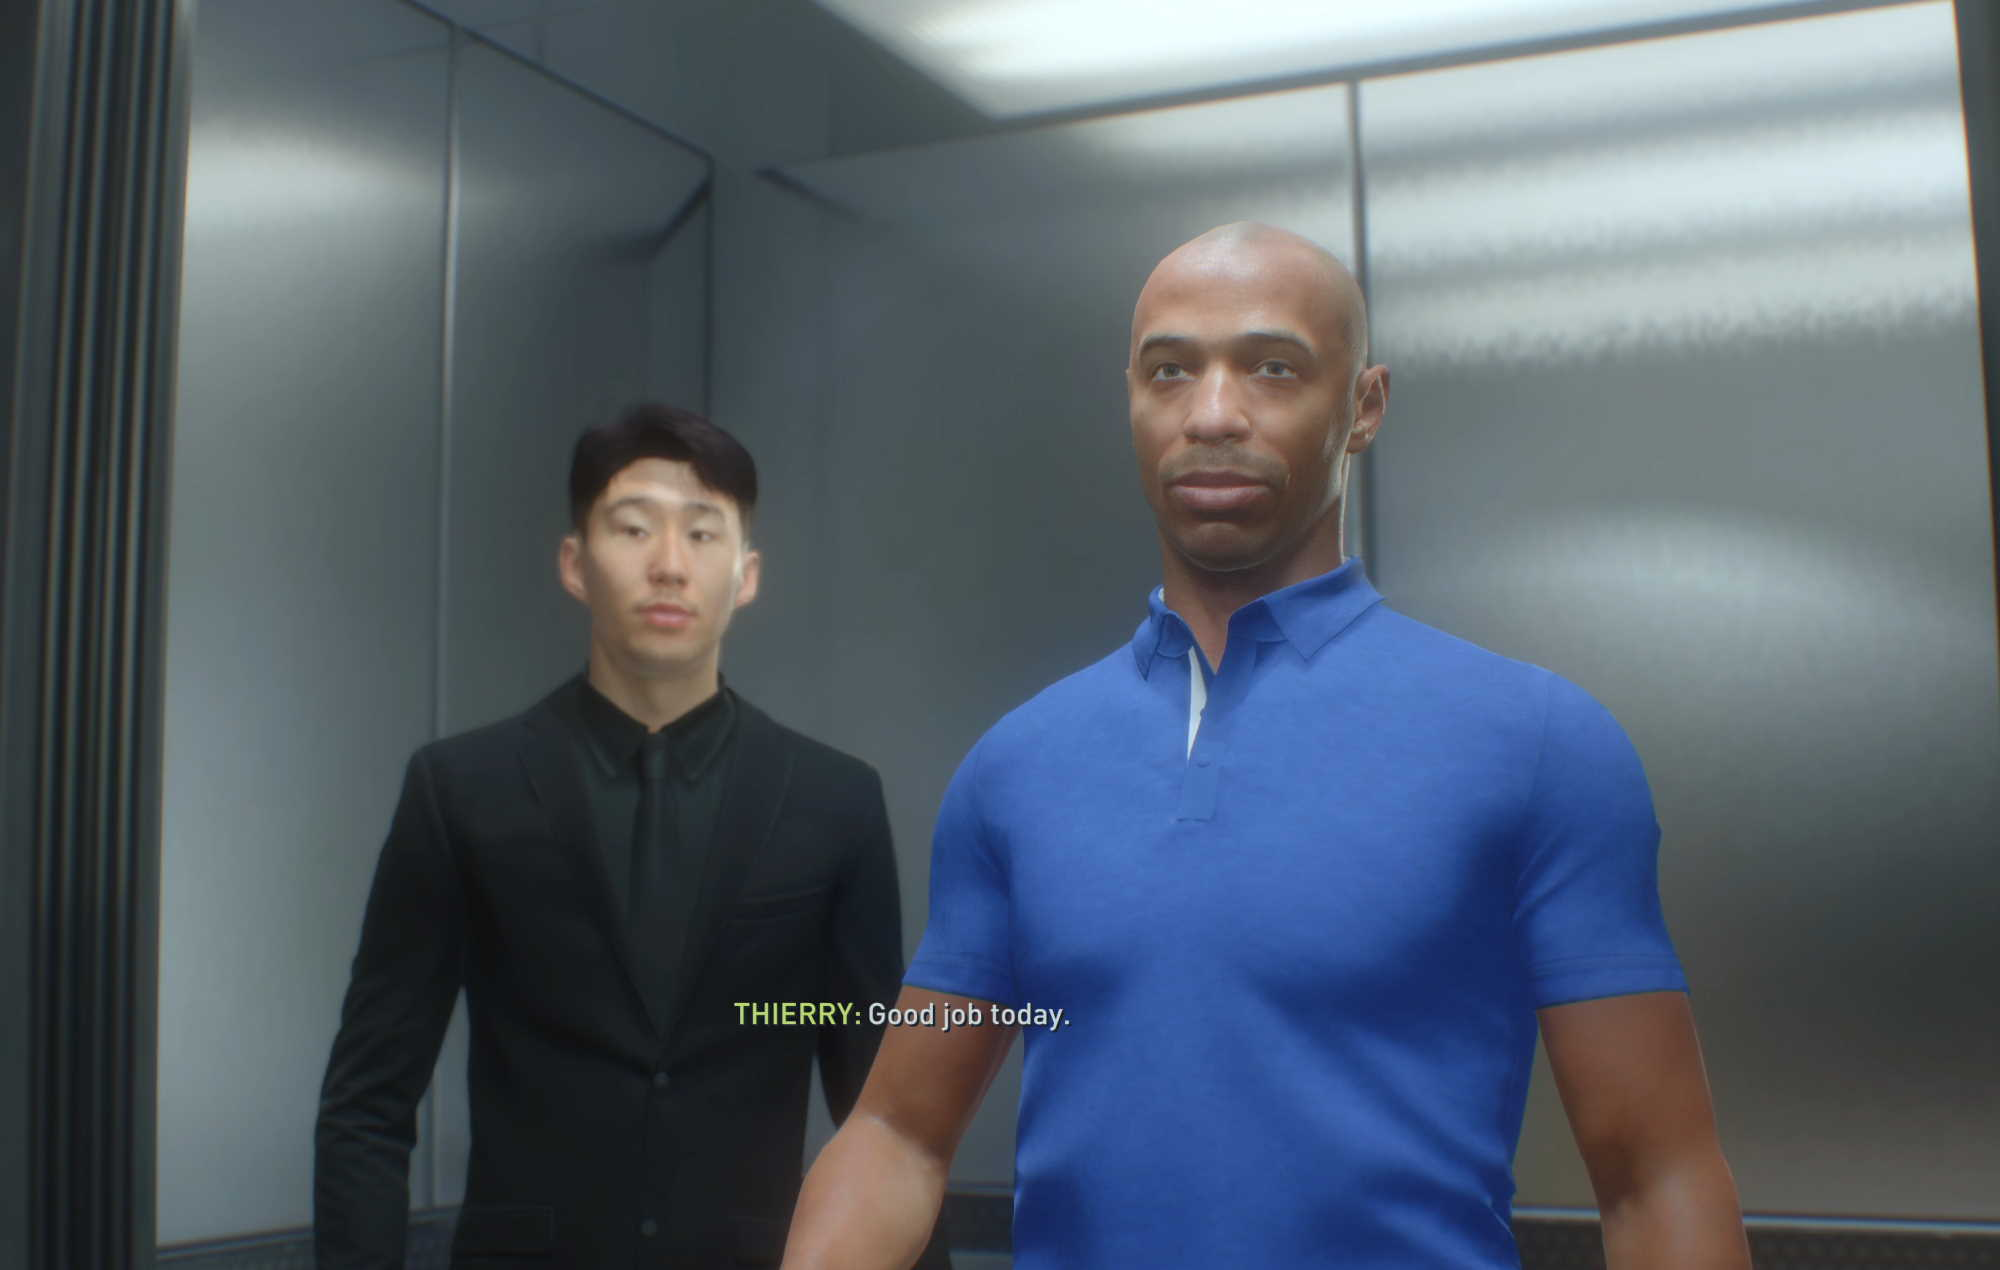 FIFA 22 Thierry Henry and Son